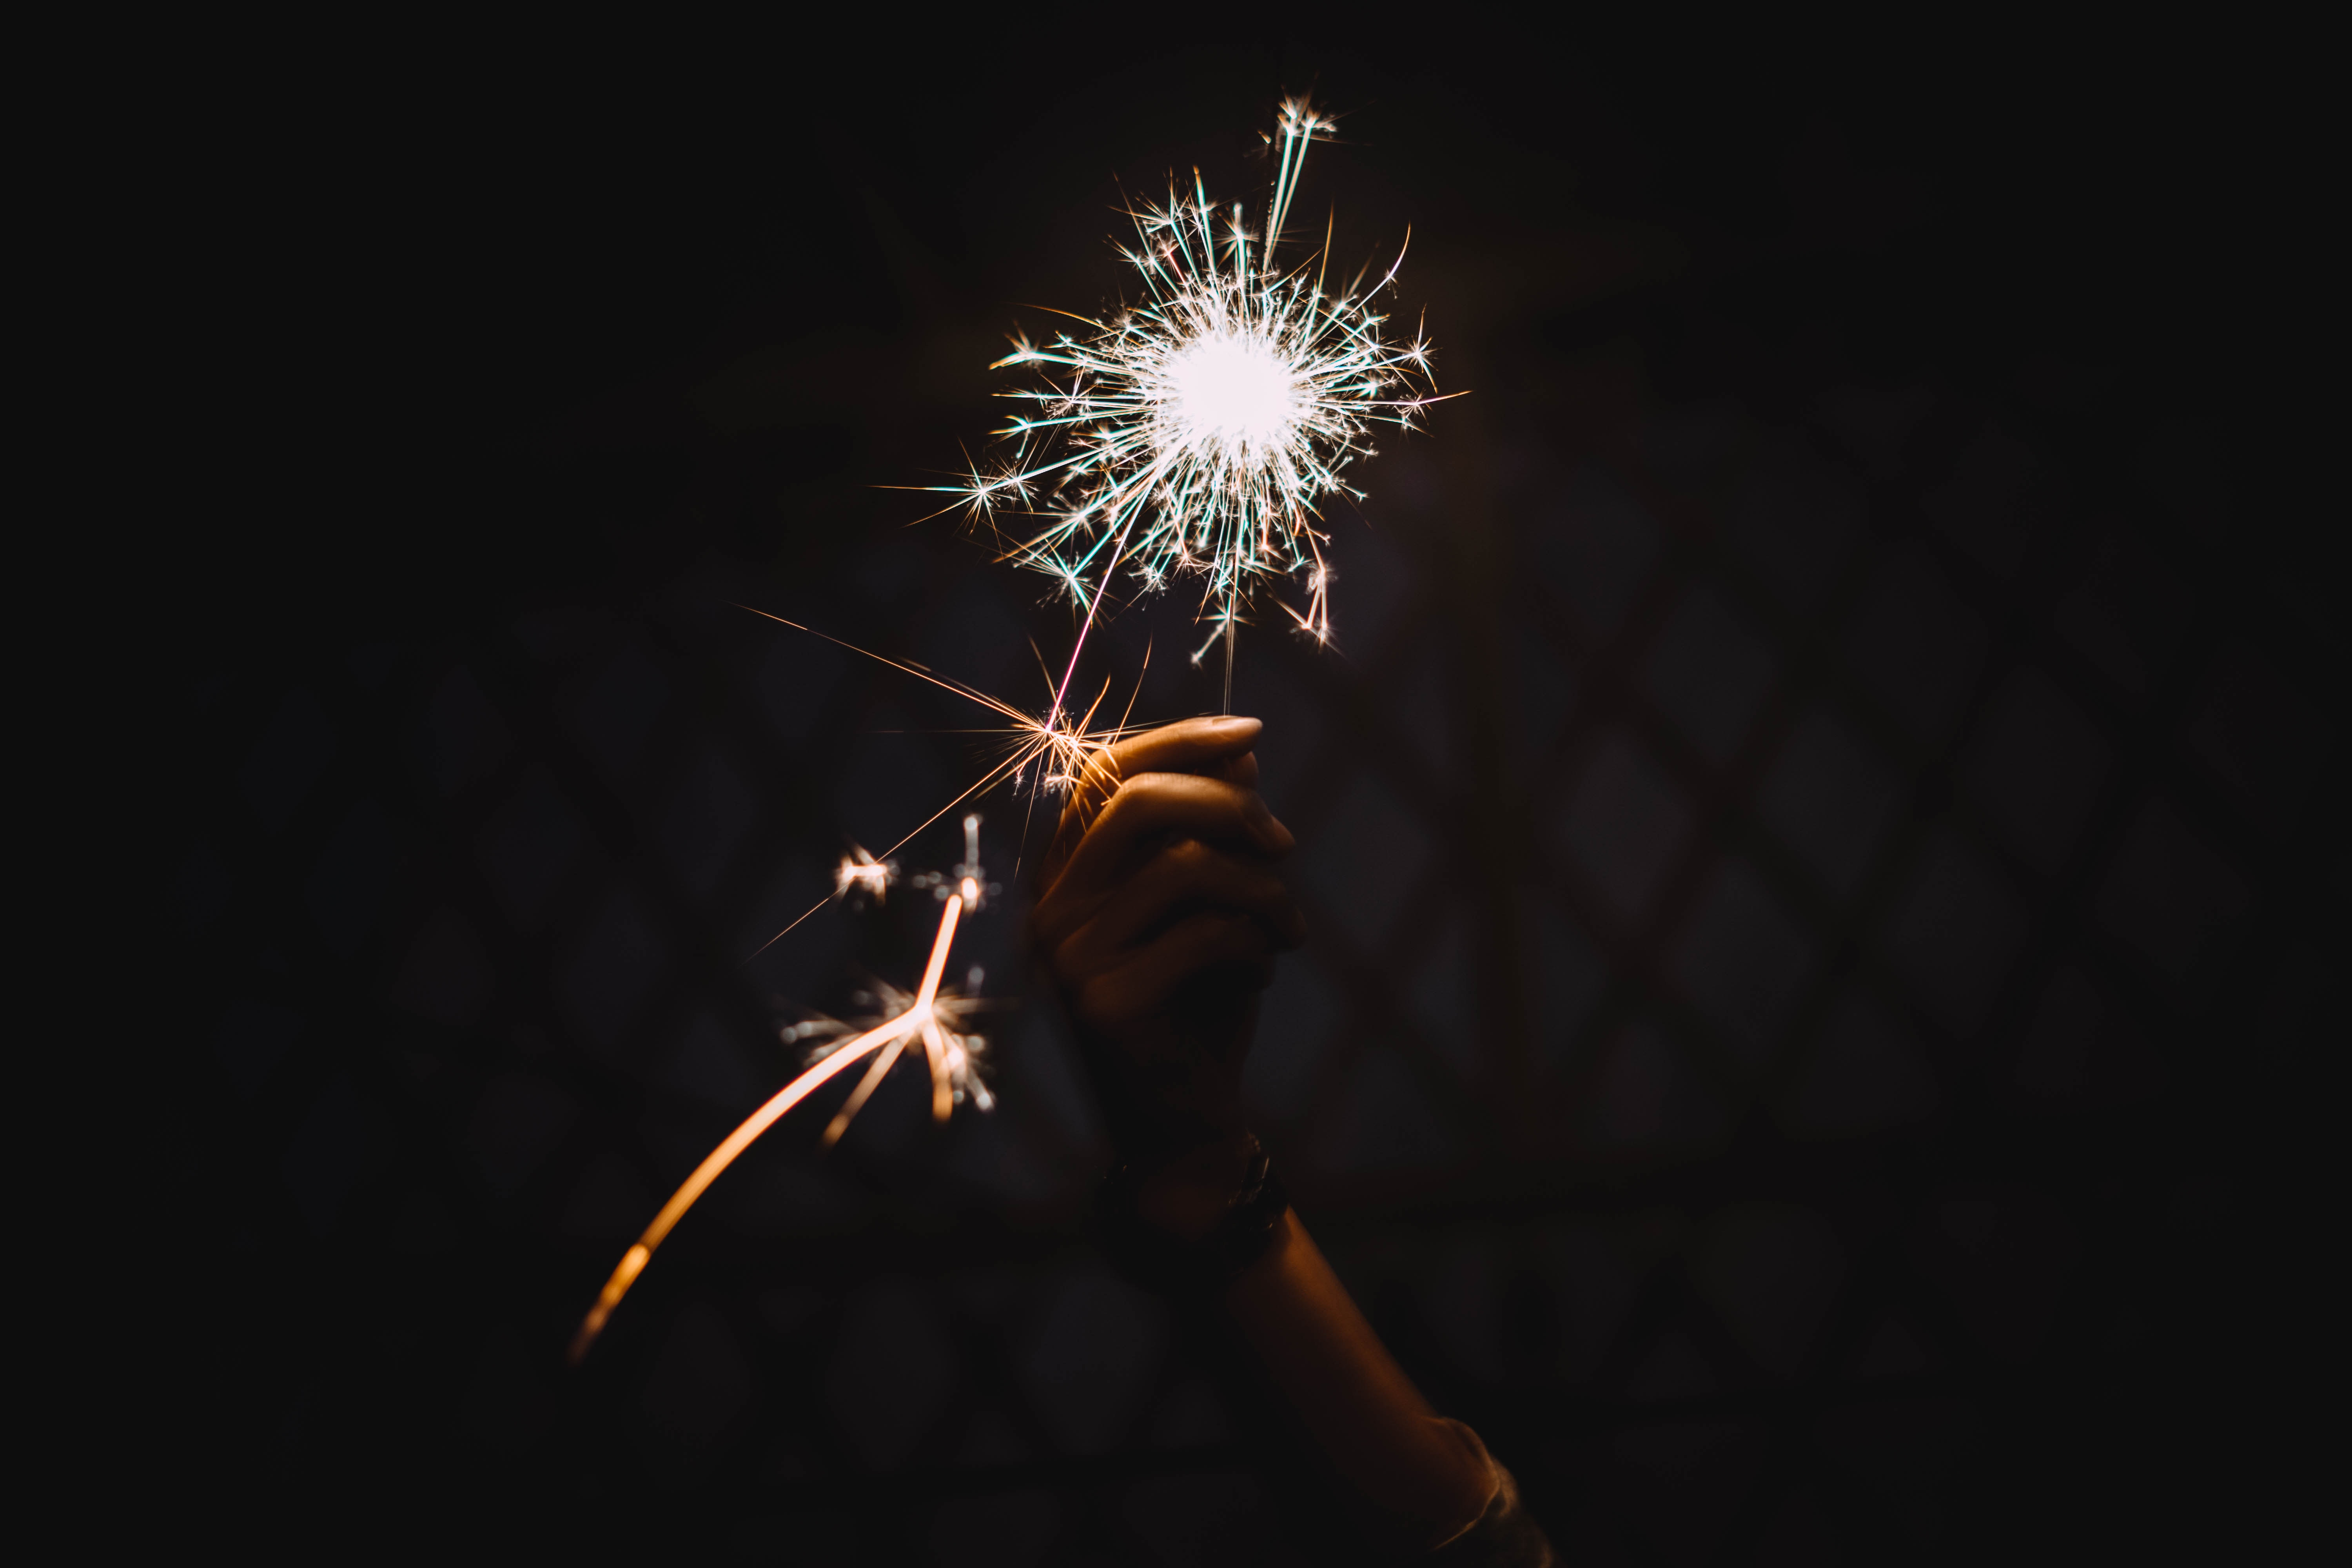 87257 Screensavers and Wallpapers Hand for phone. Download Miscellanea, Miscellaneous, Sparkler, Hand, Shine, Brilliance pictures for free